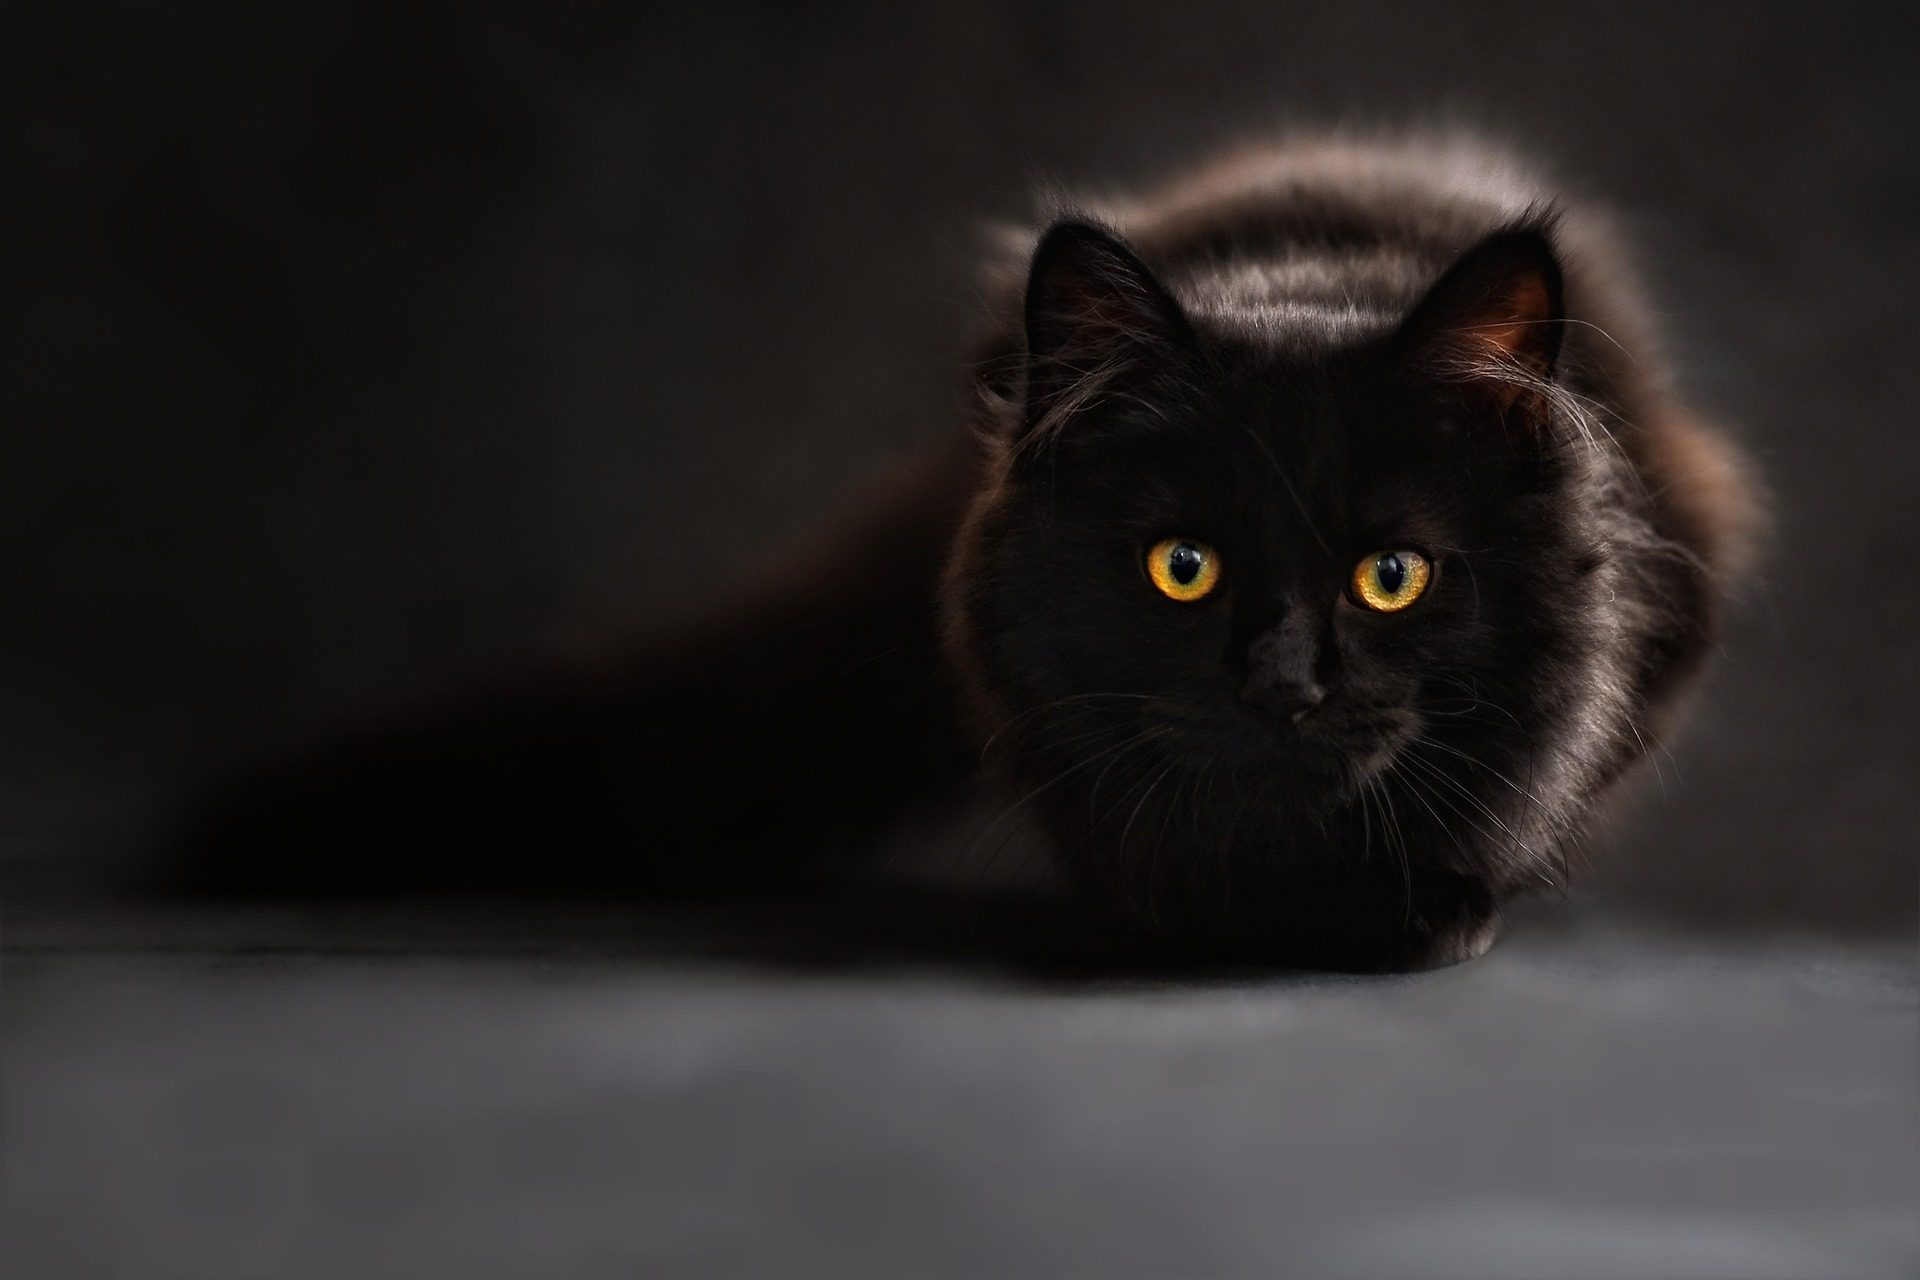 superstitions https://pixabay.com/en/cat-silhouette-cats-silhouette-694730/